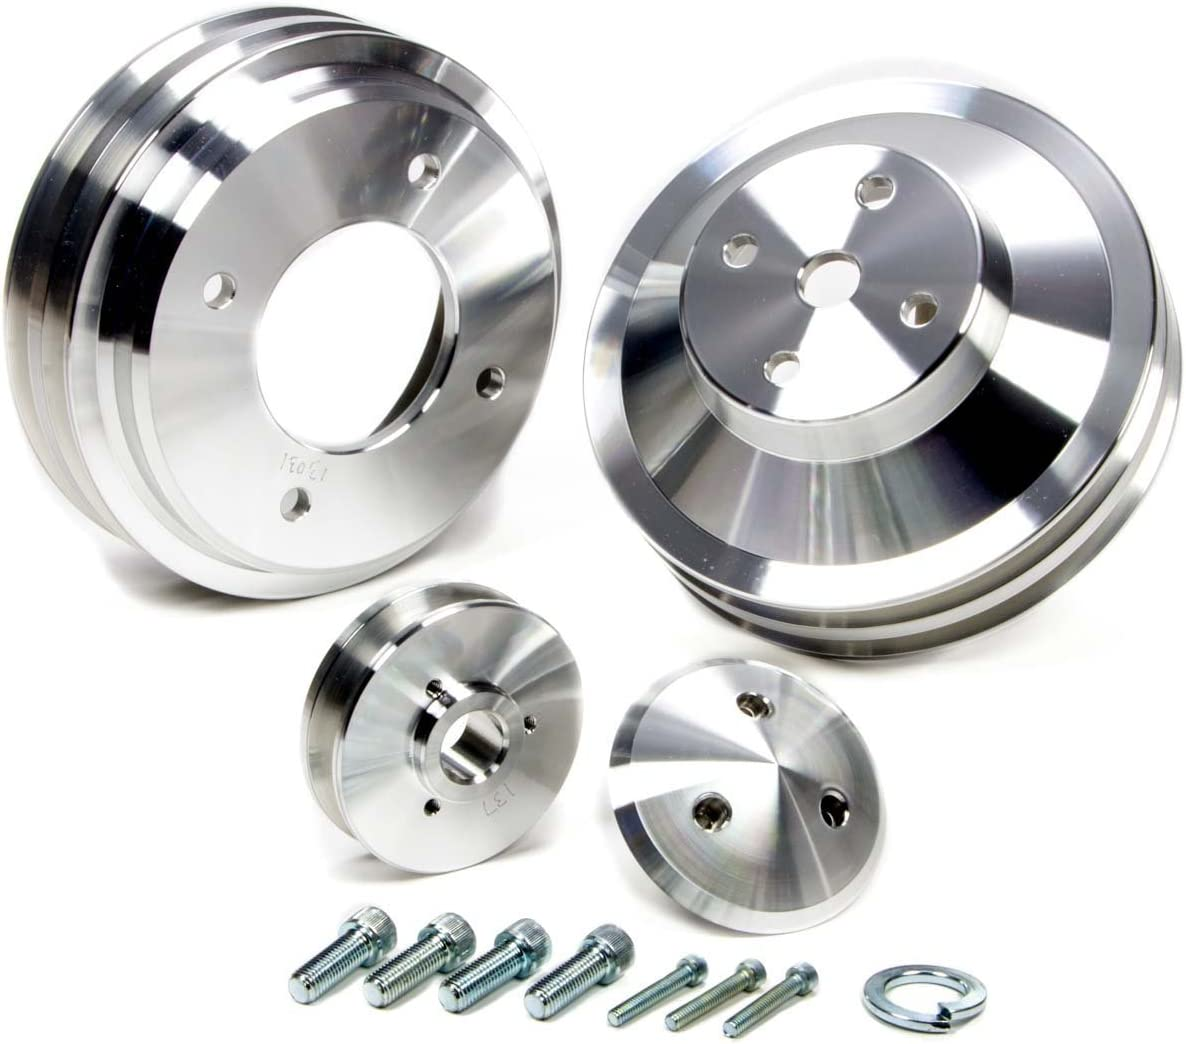 March Performance 13030 Performance Series Clear Powdercoat Aluminum Pulley Set Set of 3